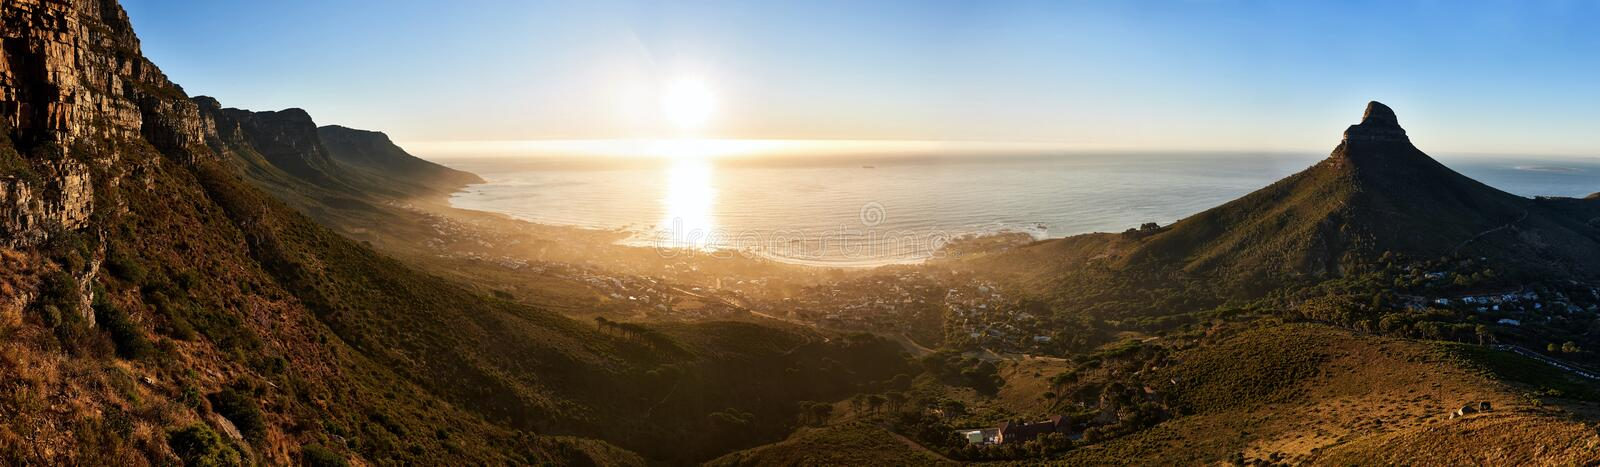 Panoramic landscape of sunset ocean and mountains in cape town stock photos